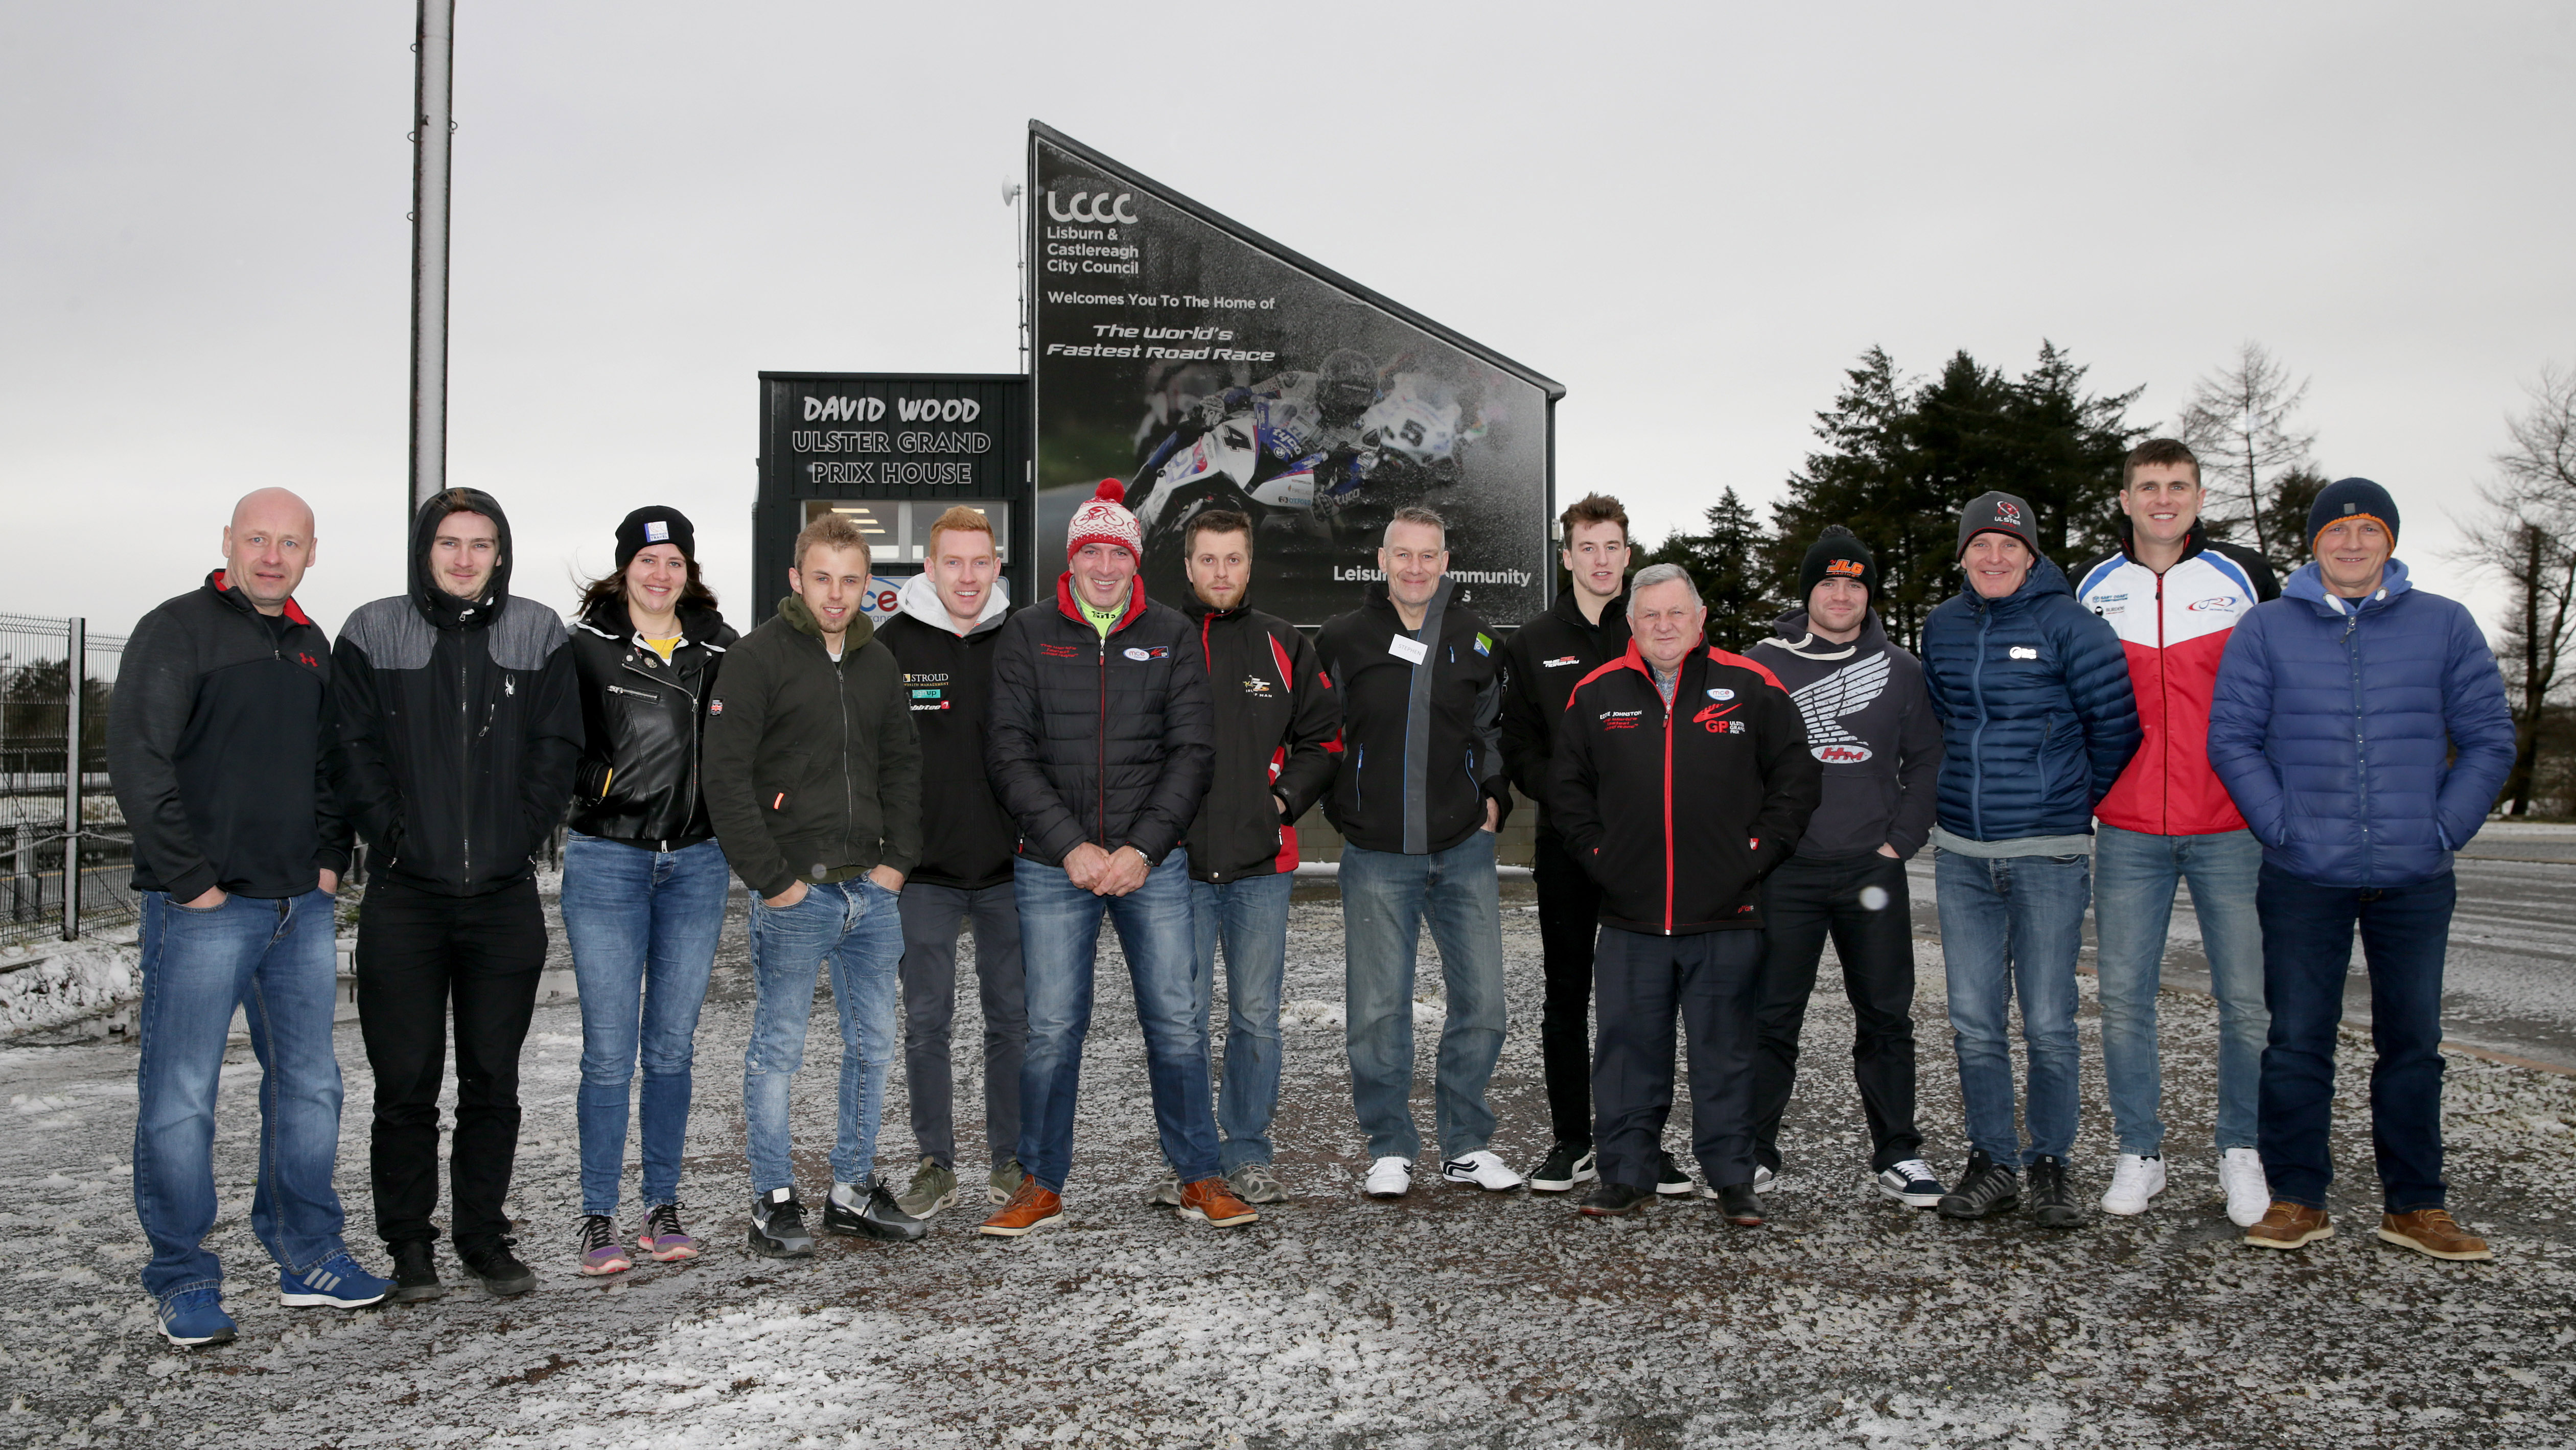 MCE Ulster Grand Prix organisers introduce compulsory training for newcomers